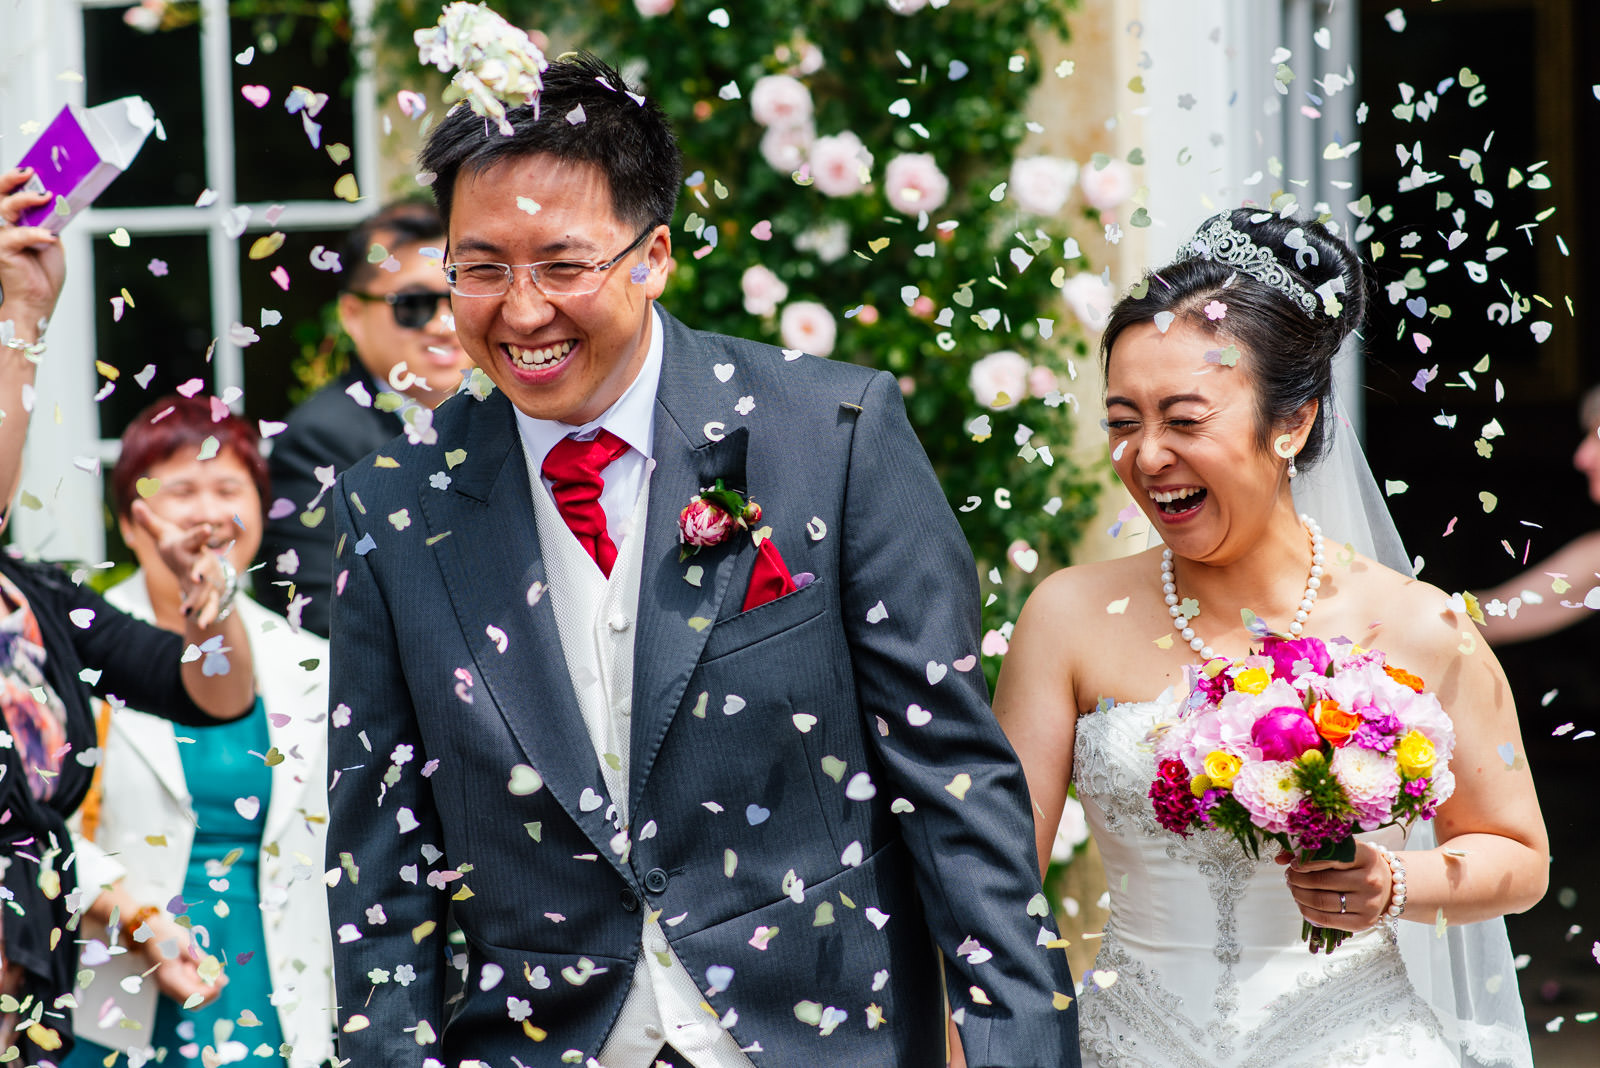 bride and groom with confetti thrown at them